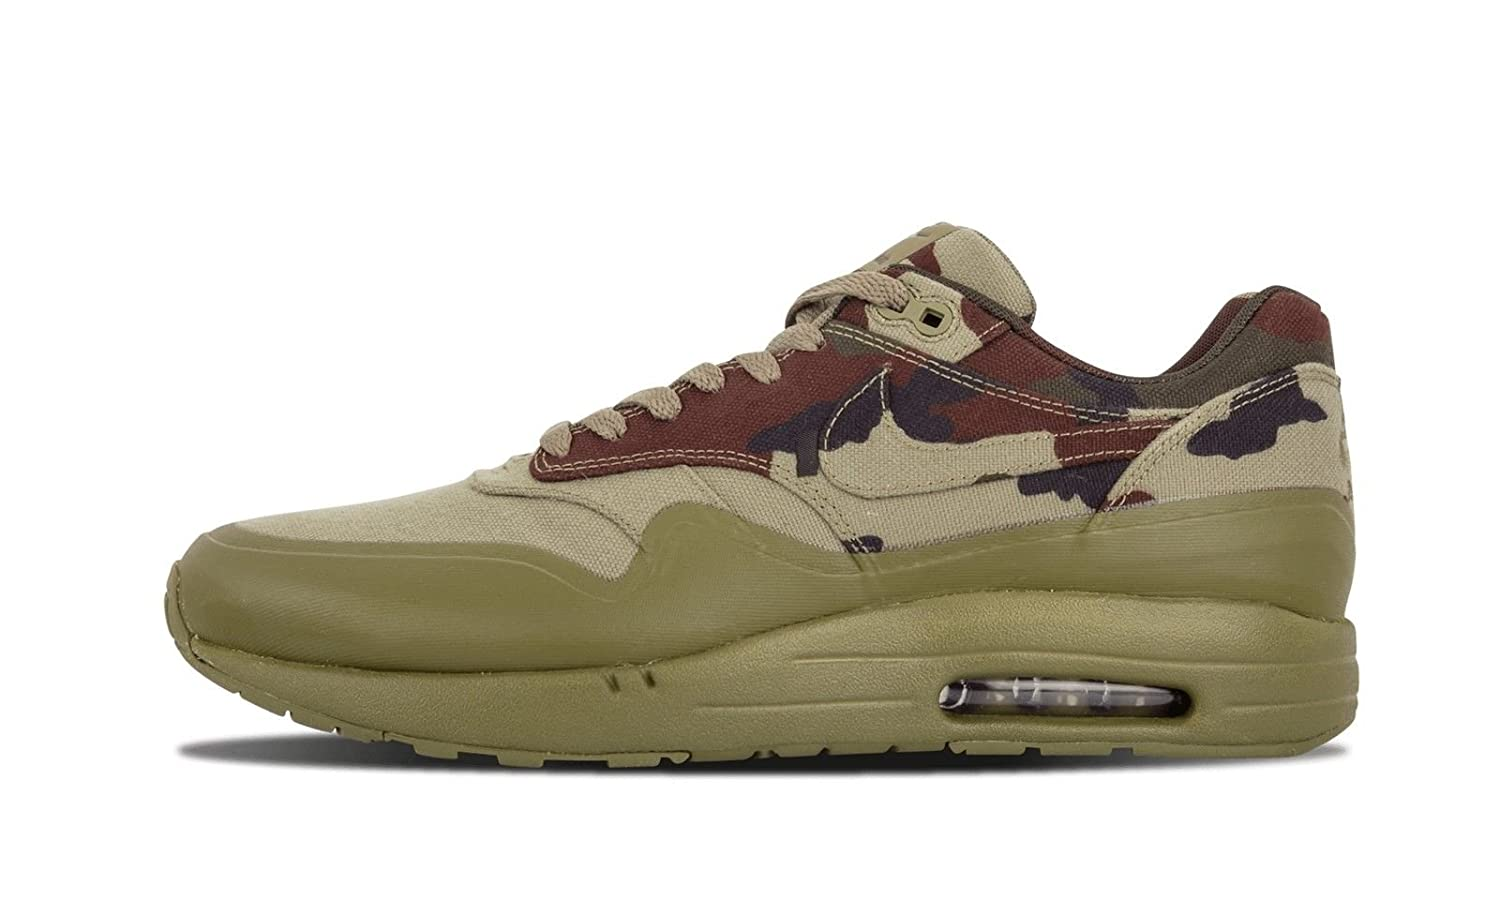 hot sale online a1ae4 d41ab Nike Air Max 1 Maxim France SP - Medium Olive Dark Army Camo  Amazon.co.uk   Shoes   Bags